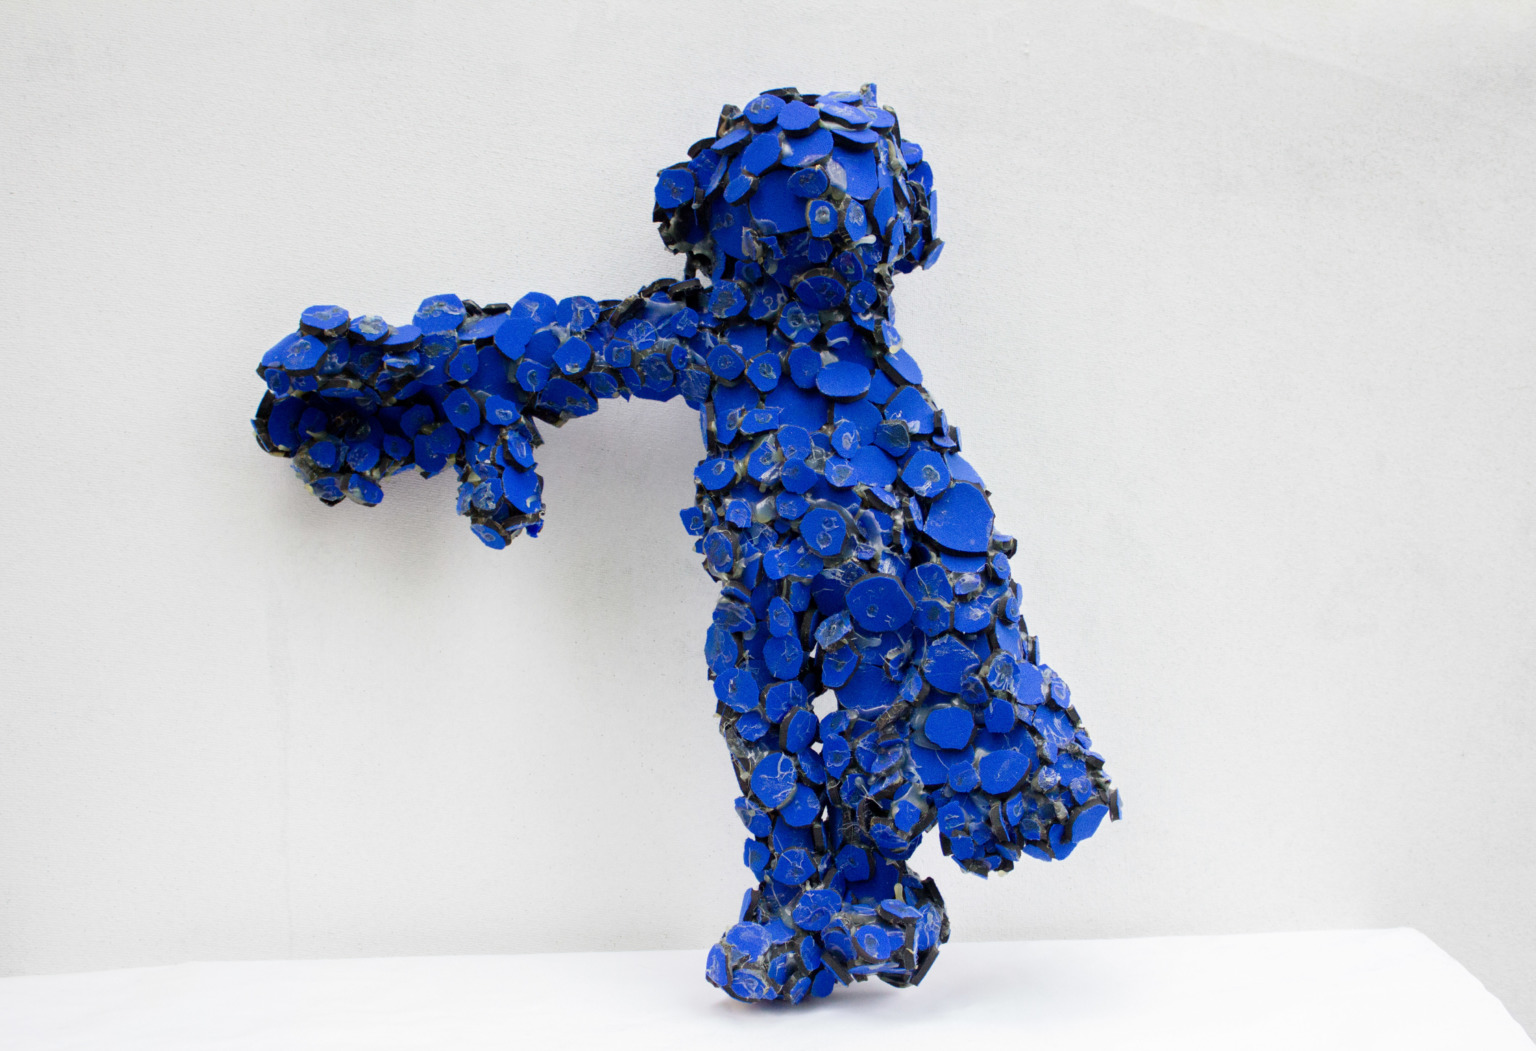 A figure made of many blue neoprene rubber discs glued together